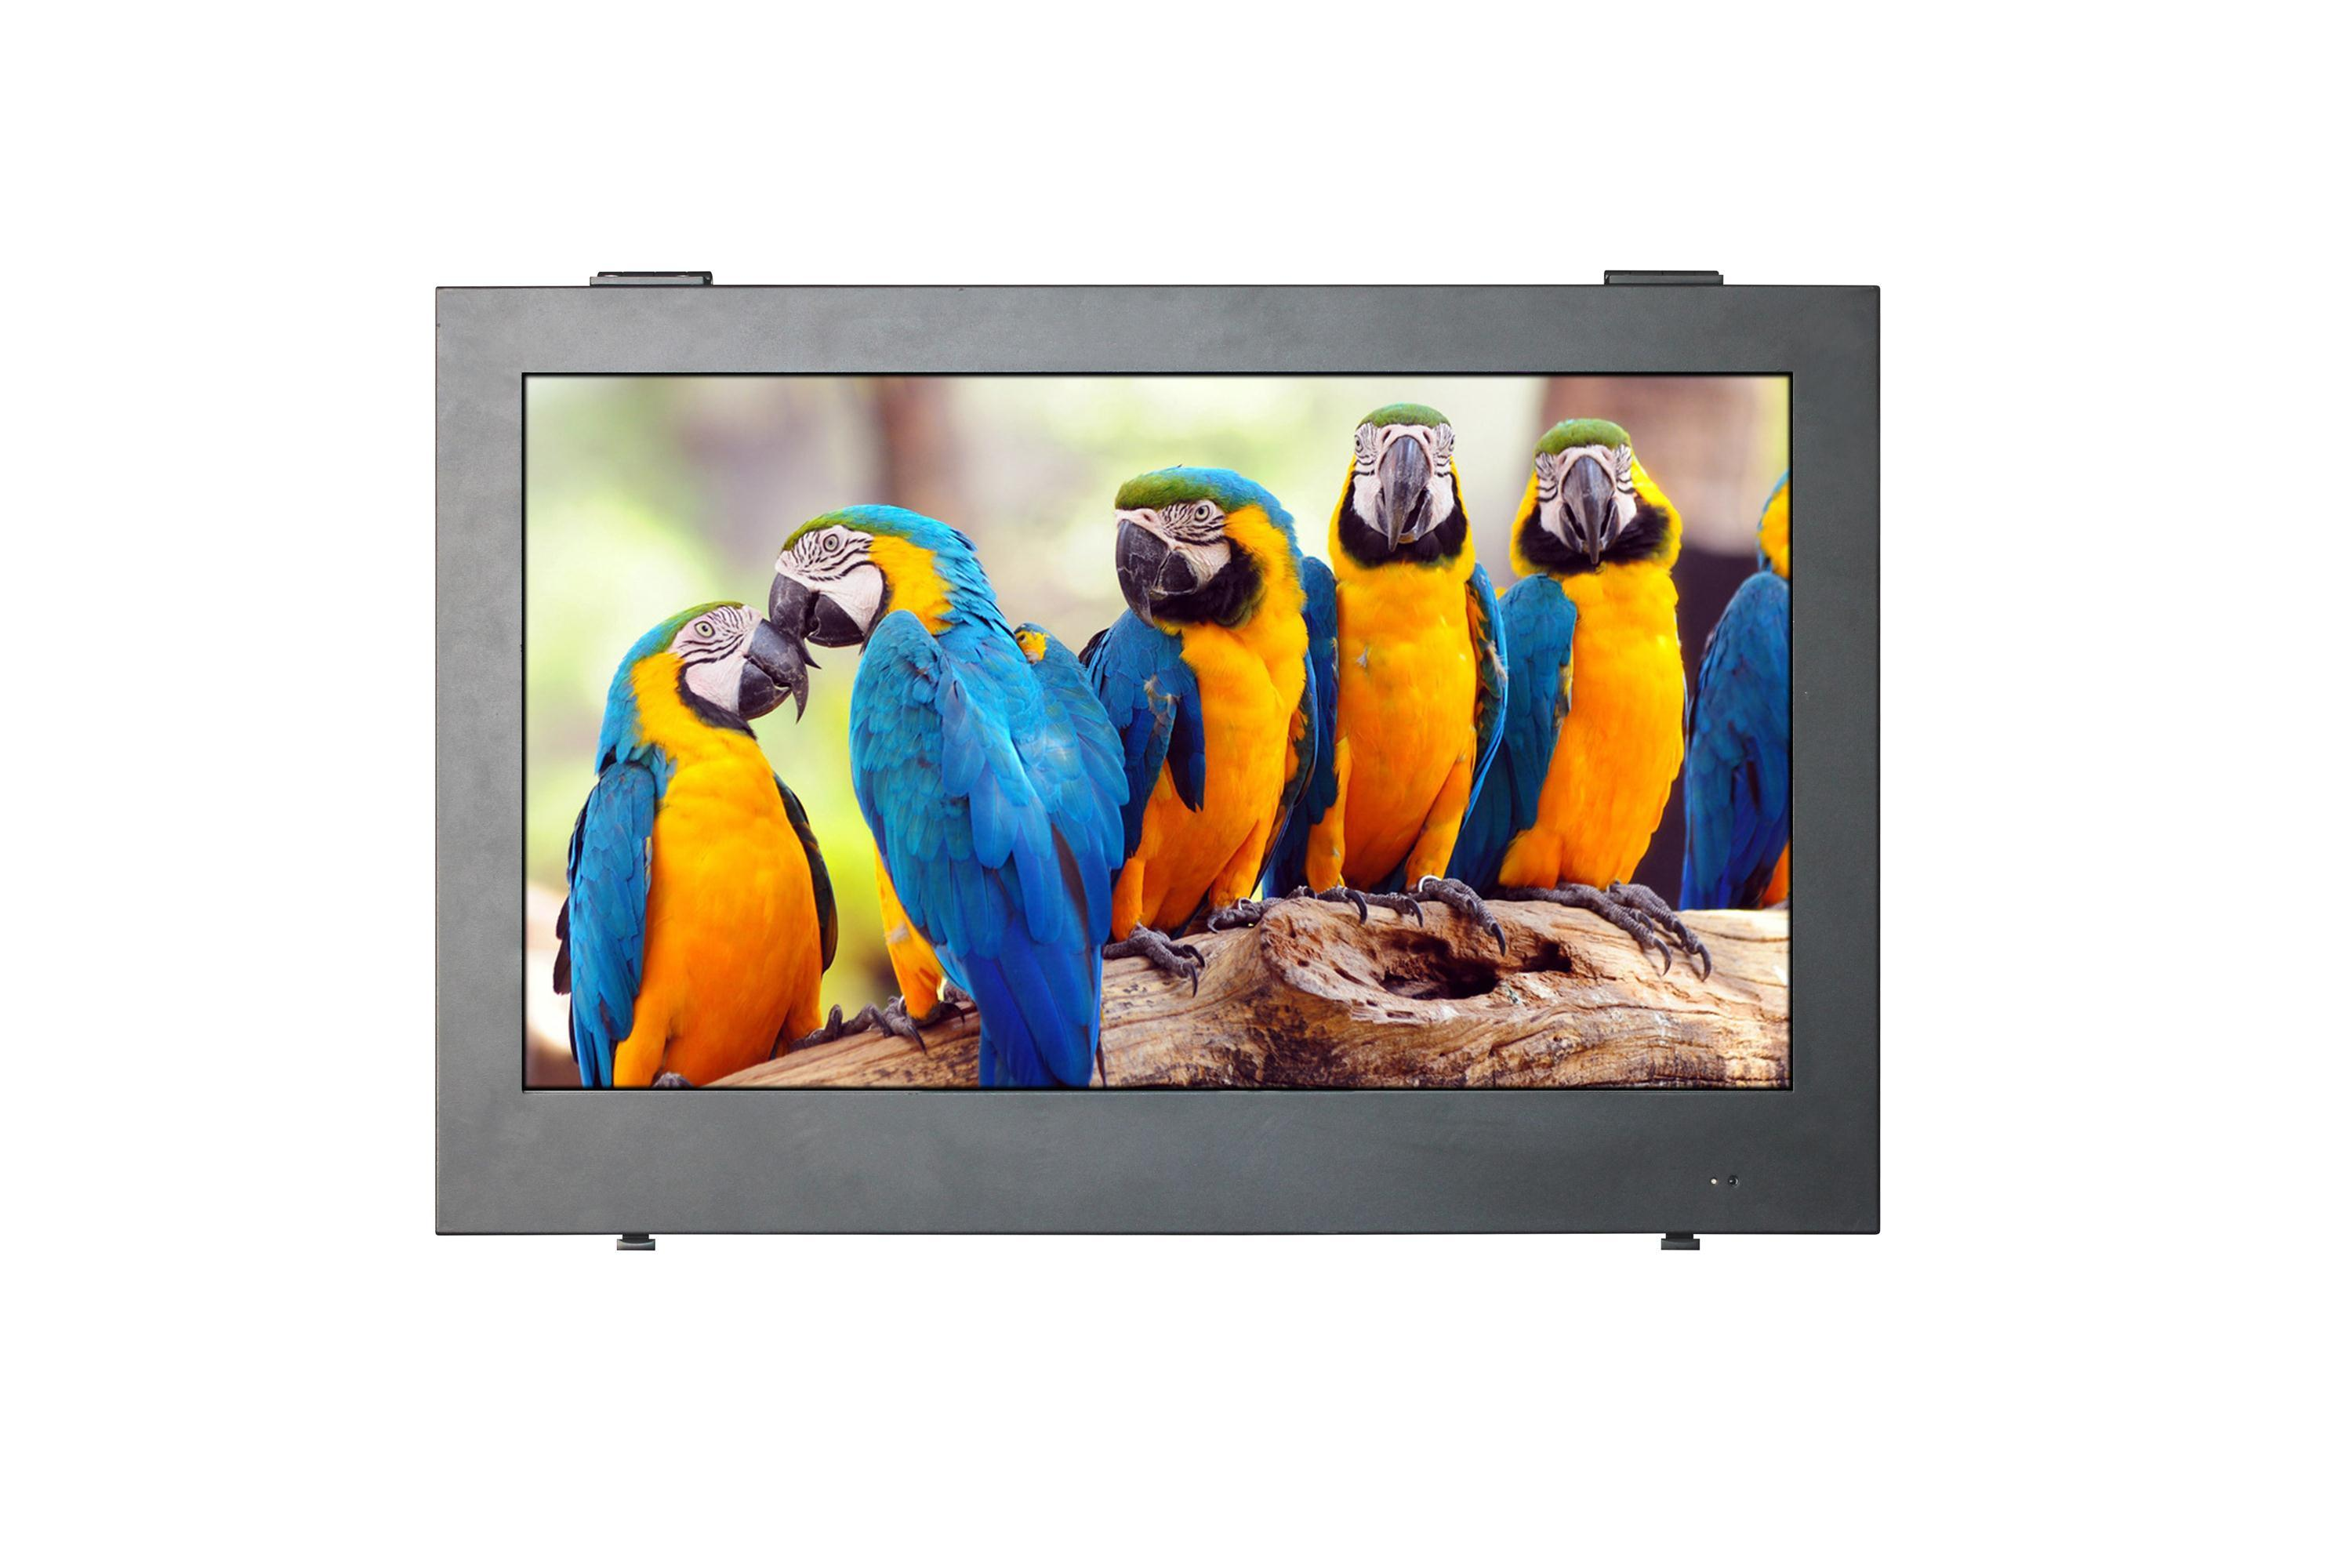 Outdoor Waterproof TV with IP65 Full Metal Enclosure Design